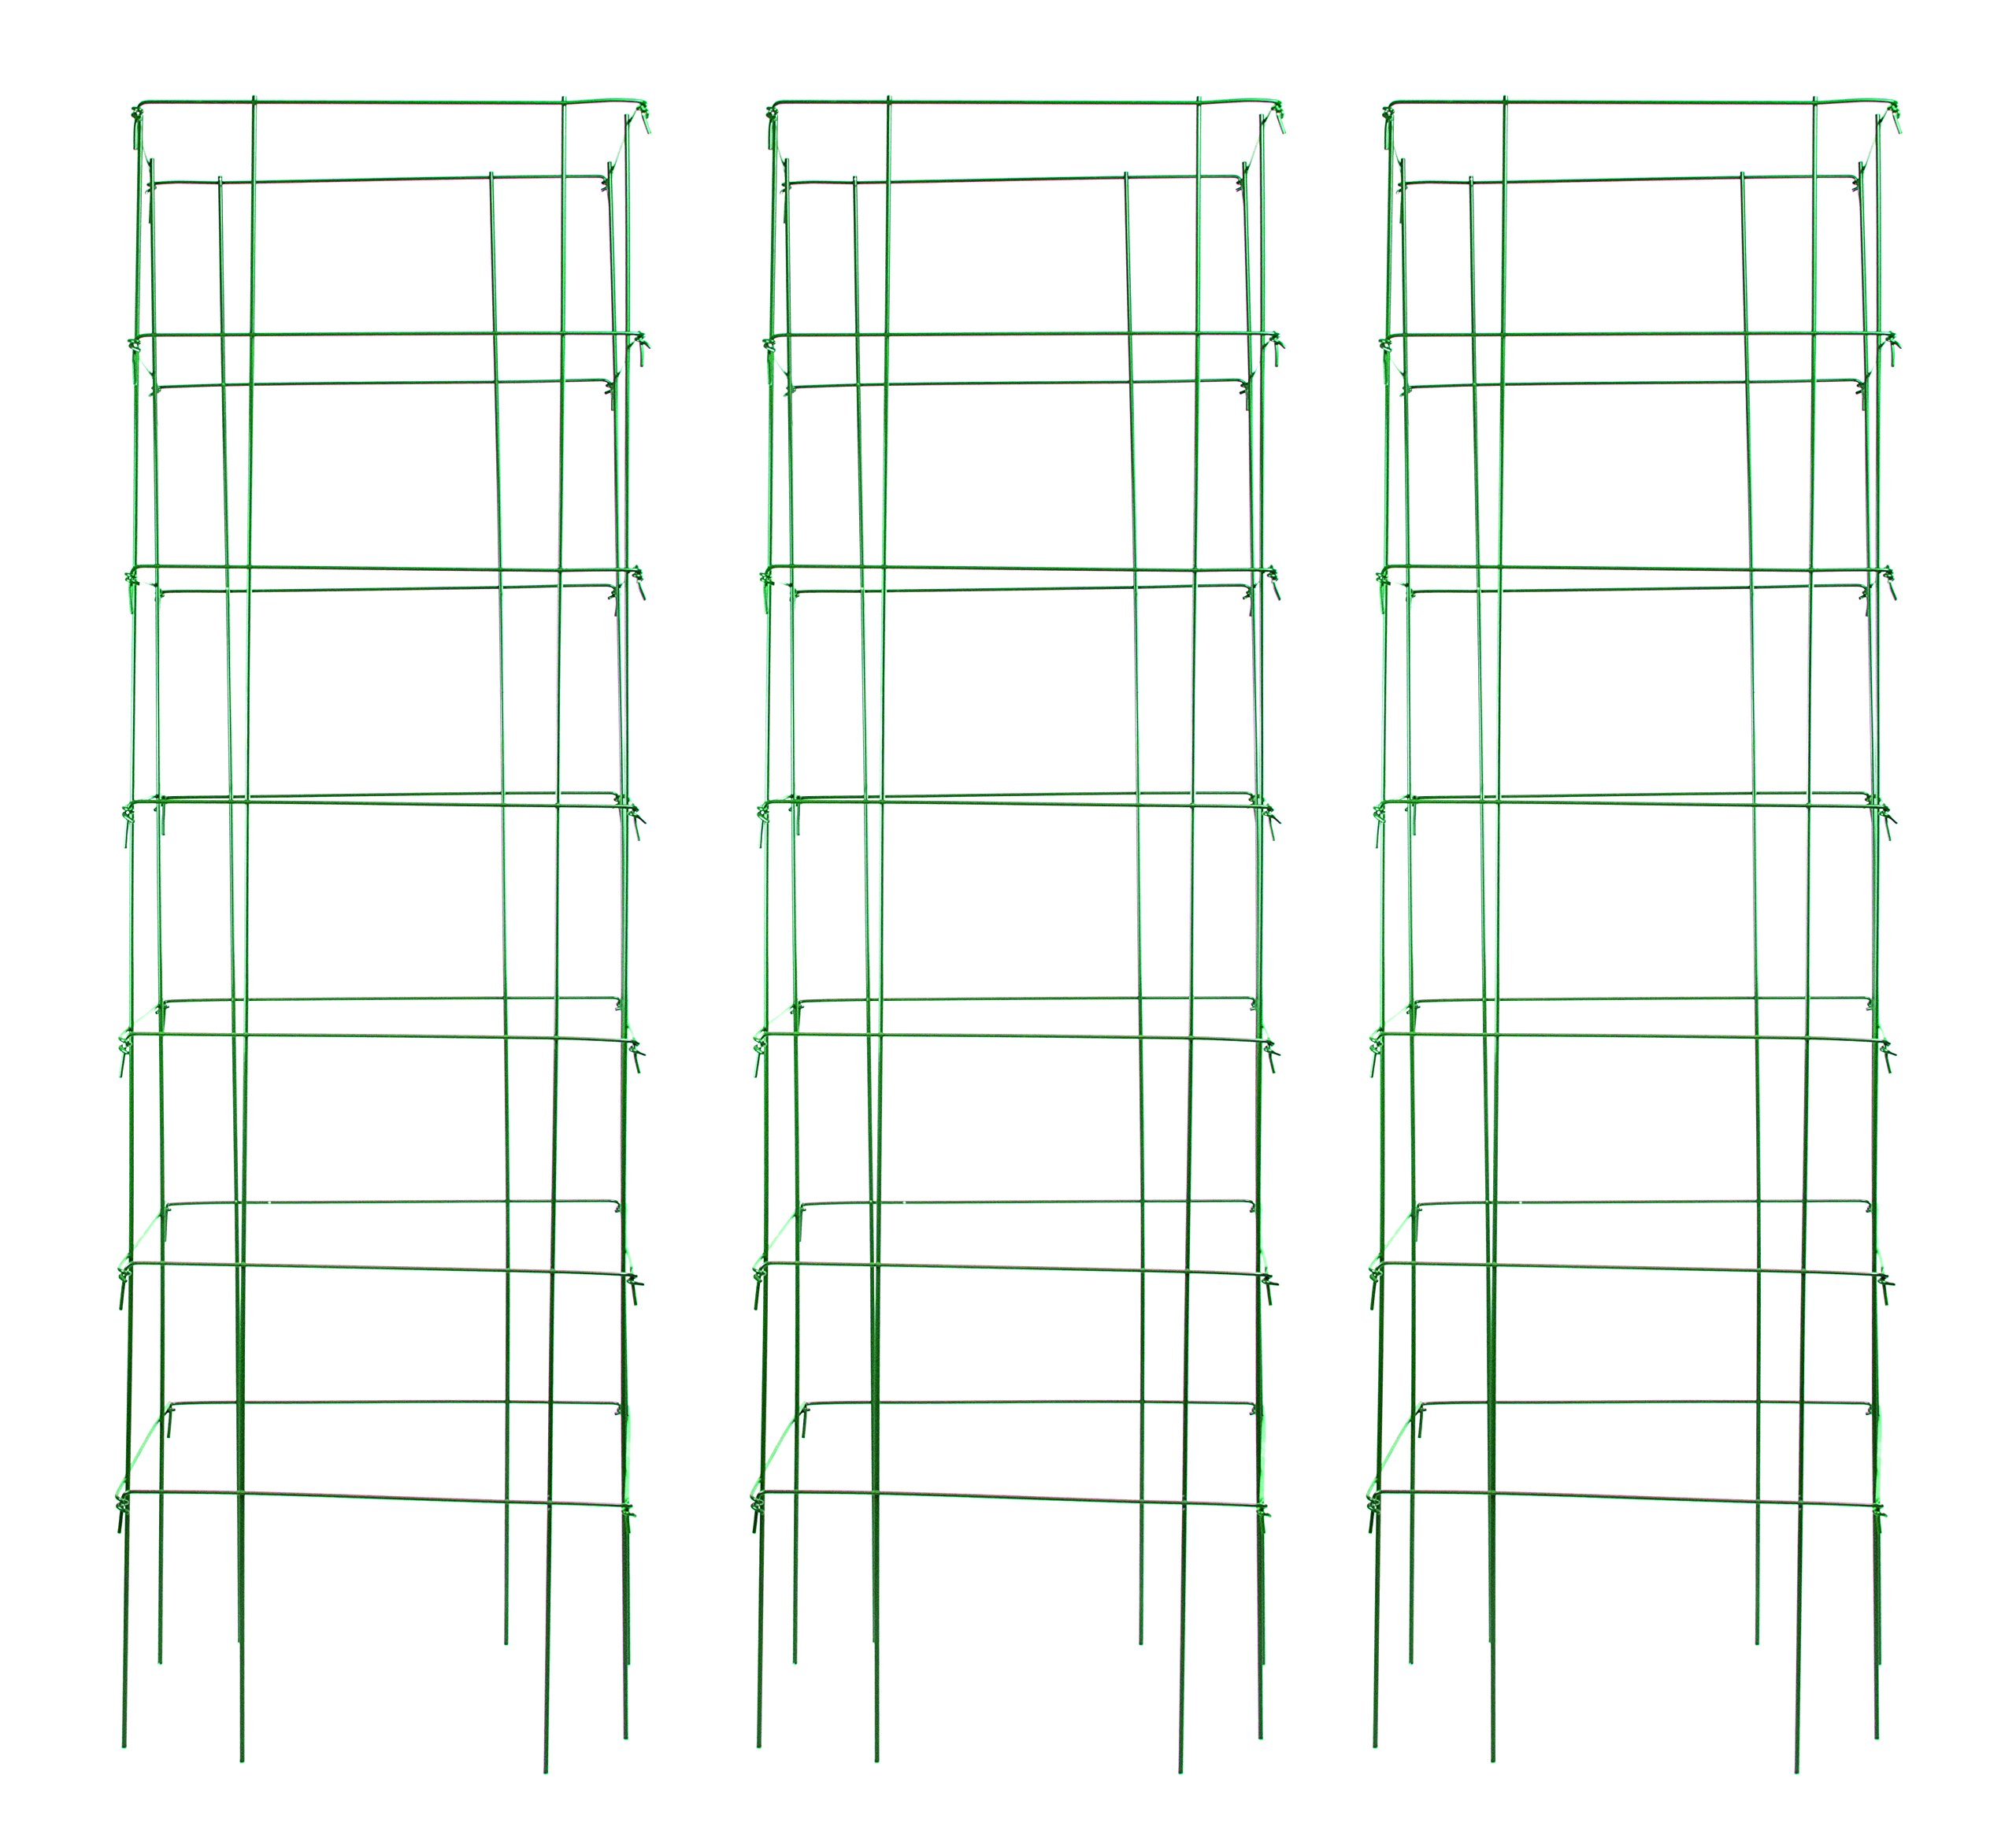 Burpee Extra Large Professional Tomato Cage 18x18x58, Heavy Gauge, Green MADE IN THE USA